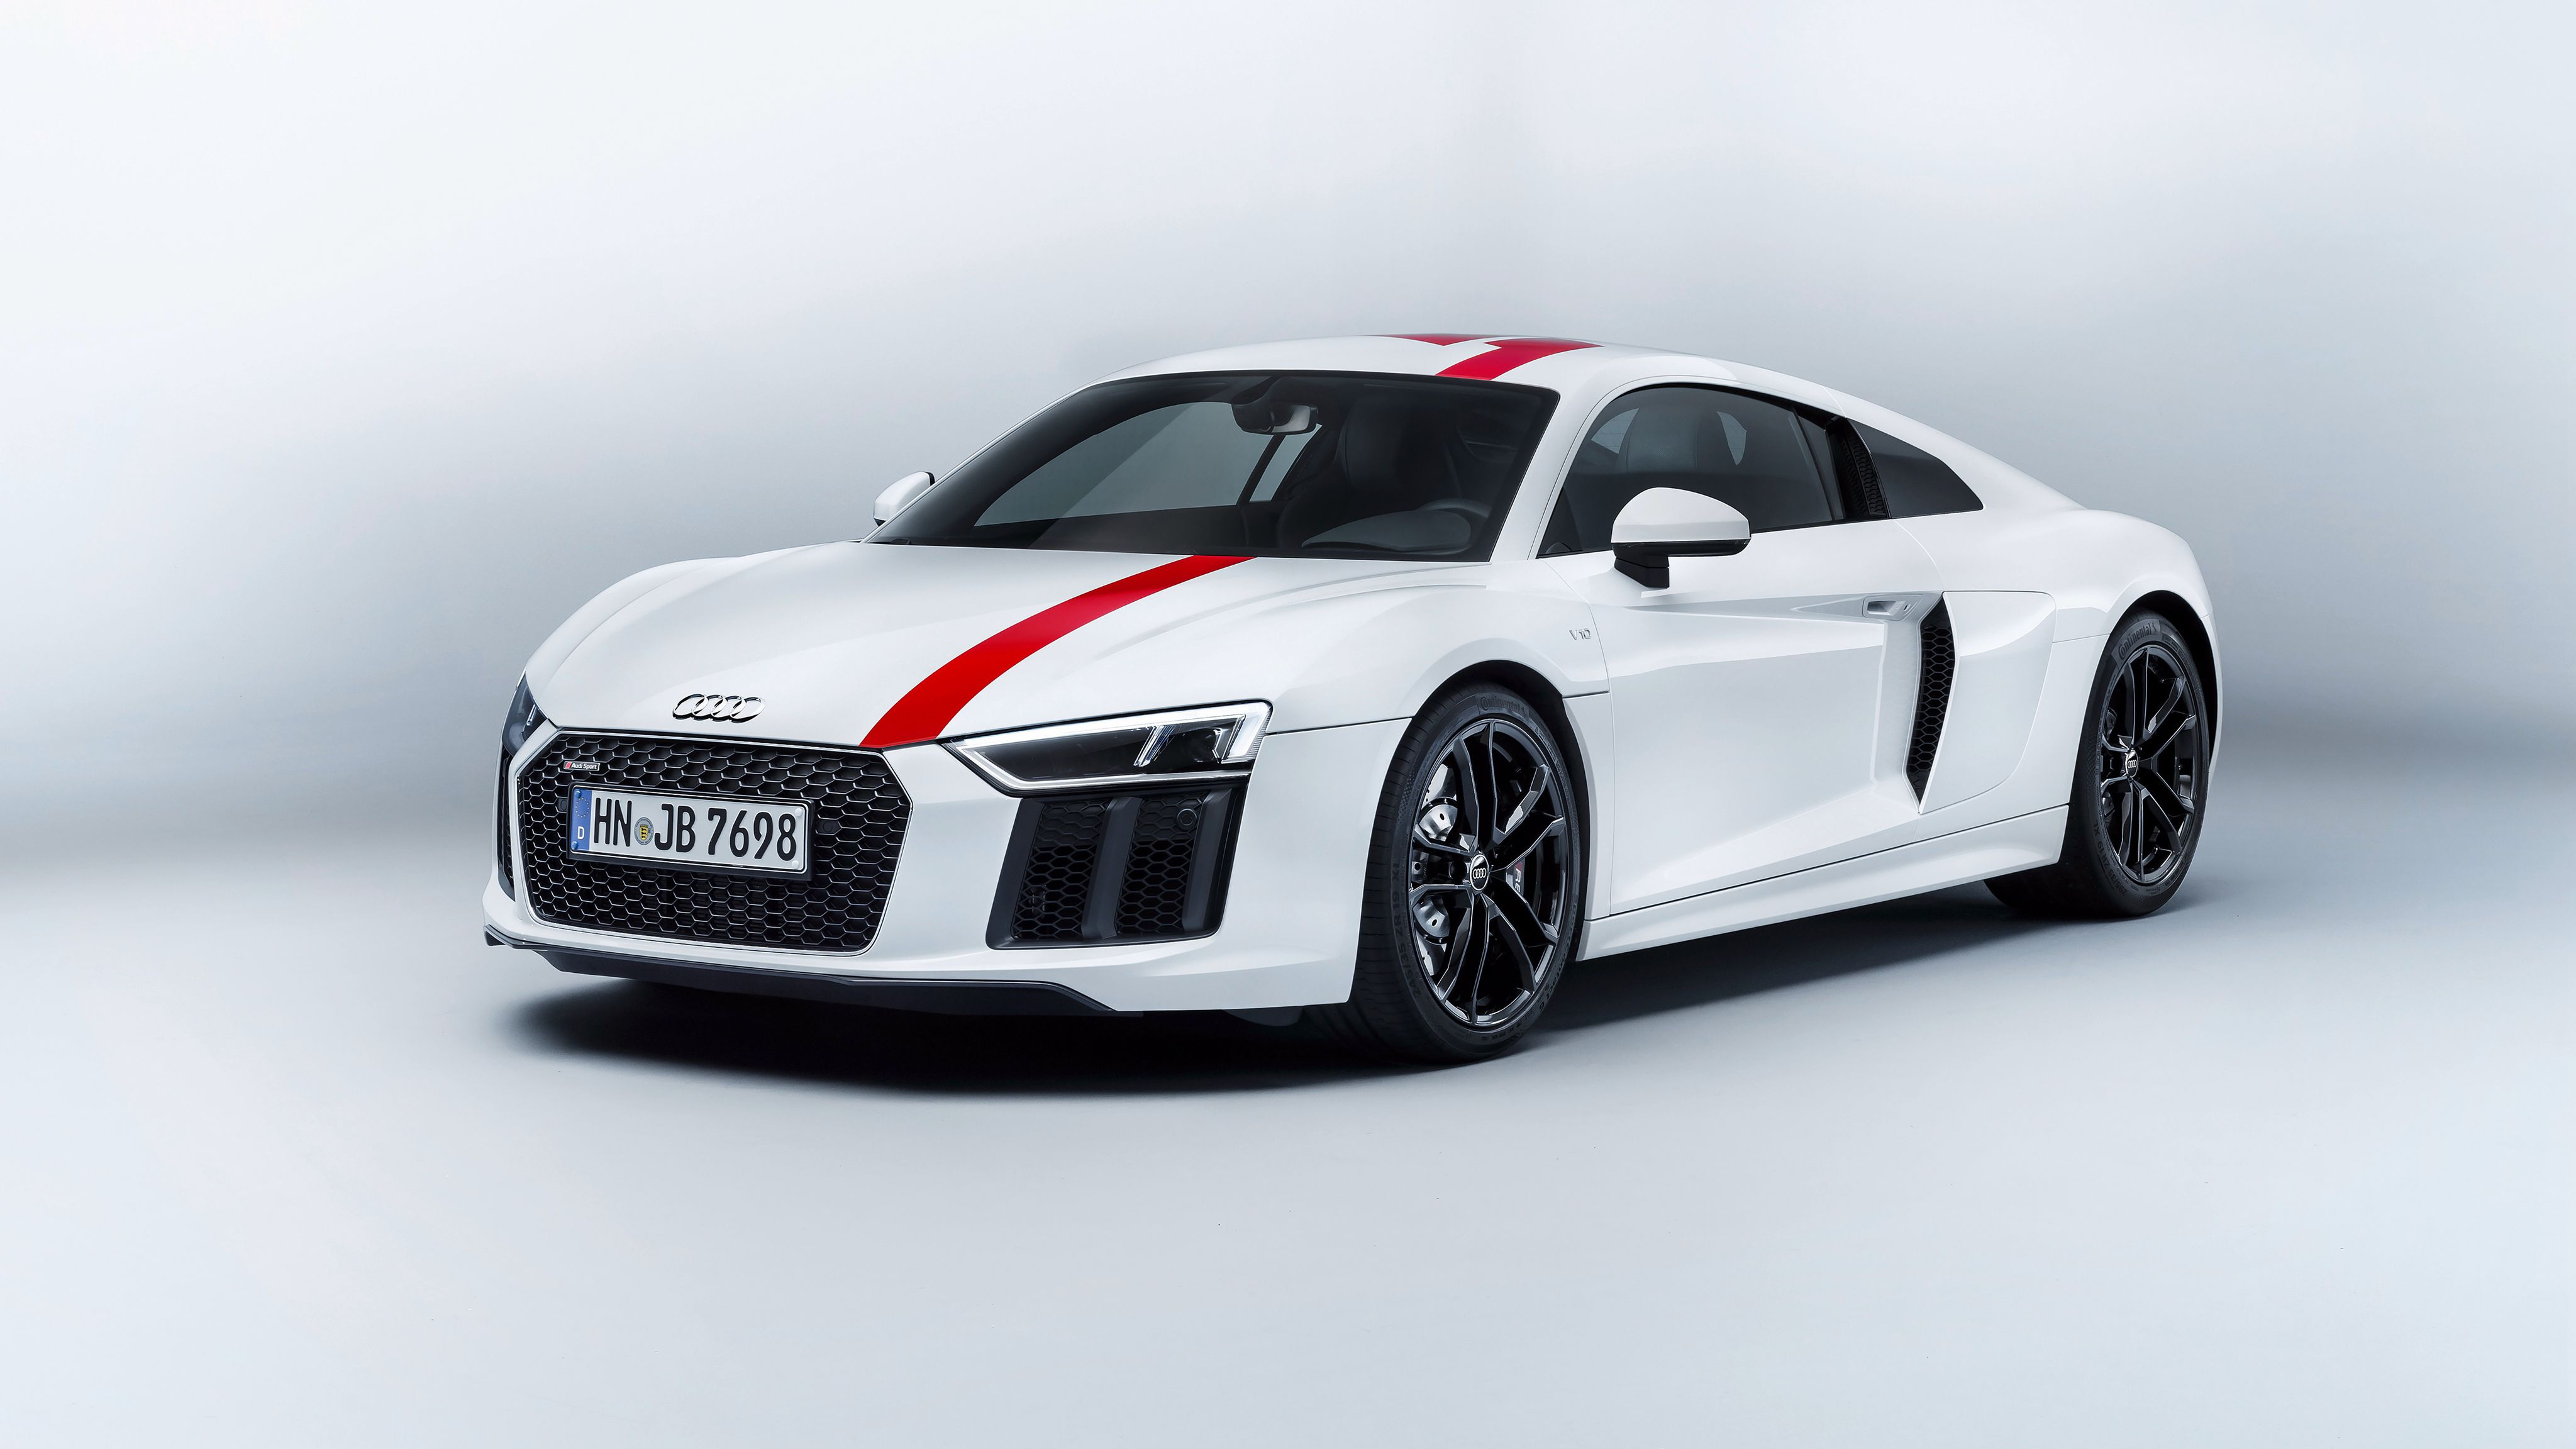 2018 Audi R8 Wallpapers Top Free 2018 Audi R8 Backgrounds Wallpaperaccess